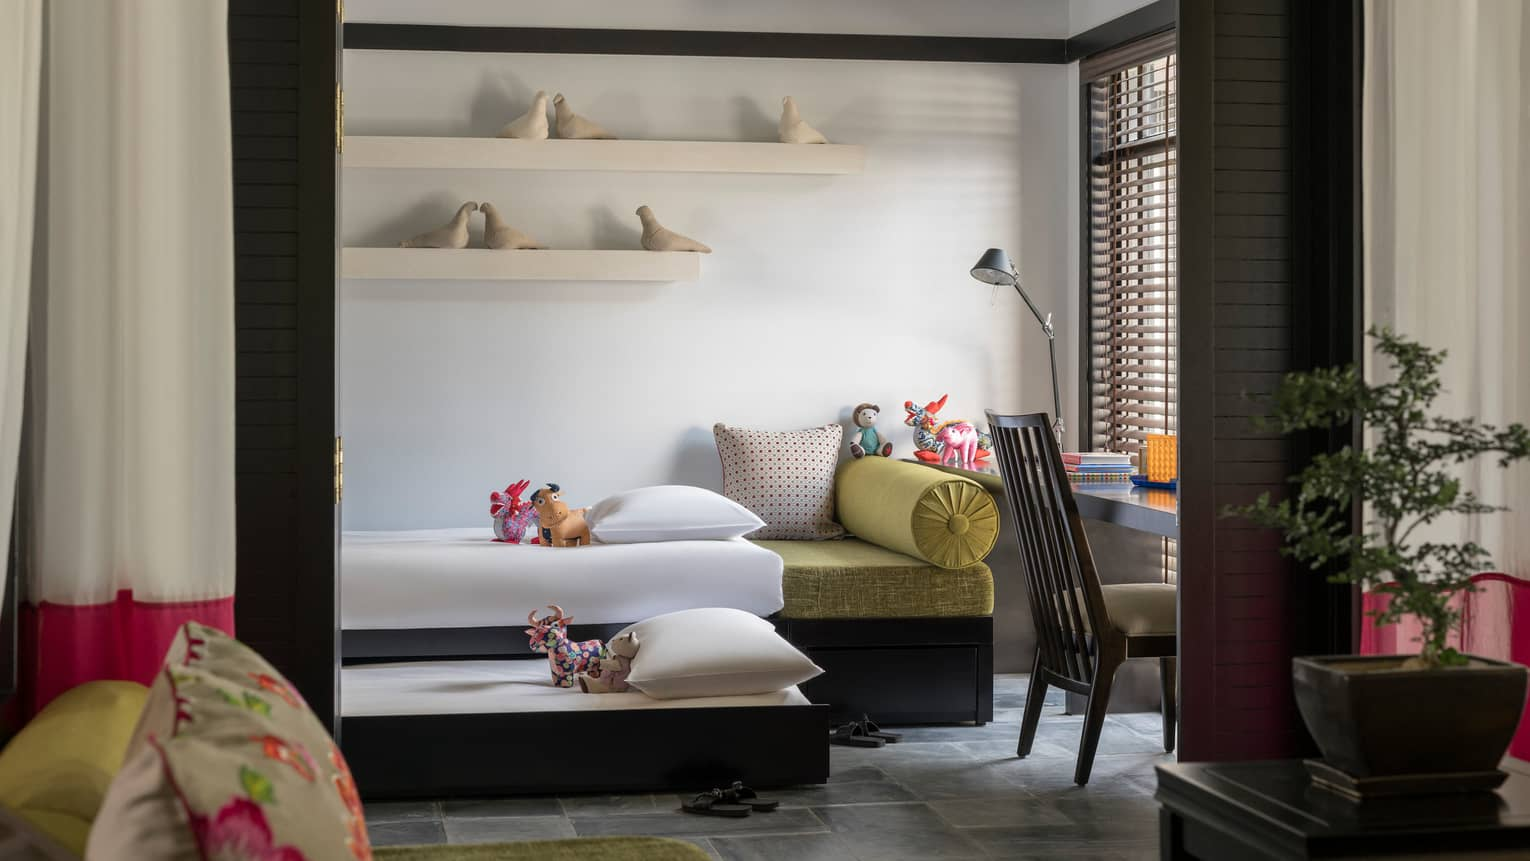 Family Villa bedroom with two children's day beds, ceramic birds on shelves